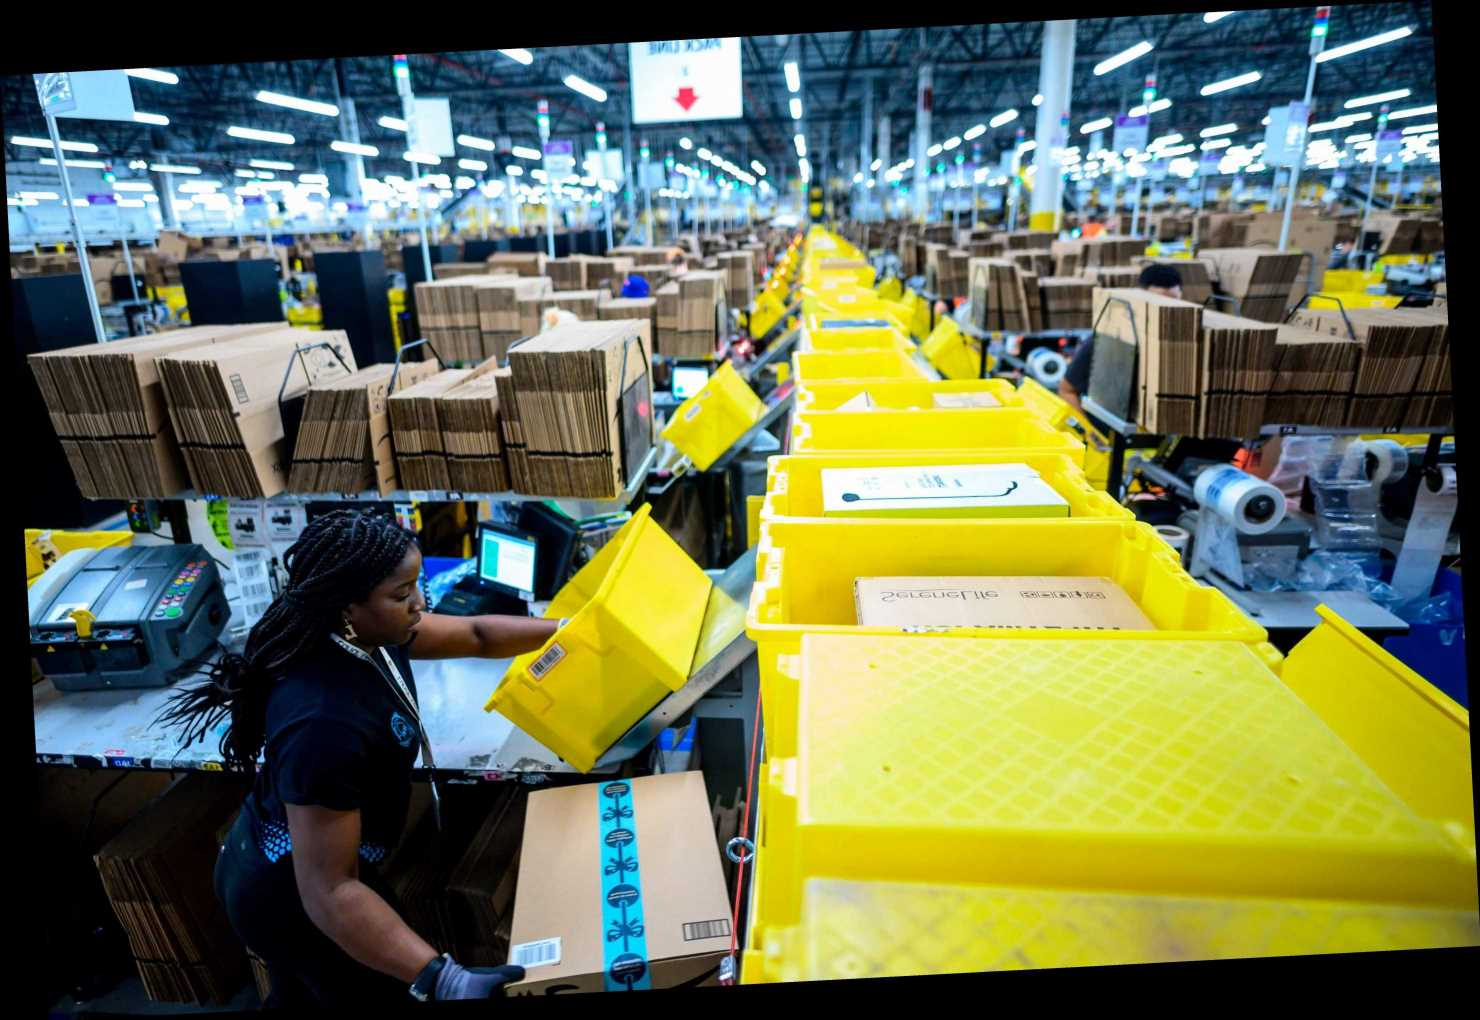 Amazon employees plan 'online walkout' to protest firings and treatment of warehouse workers during coronavirus crisis – The Sun